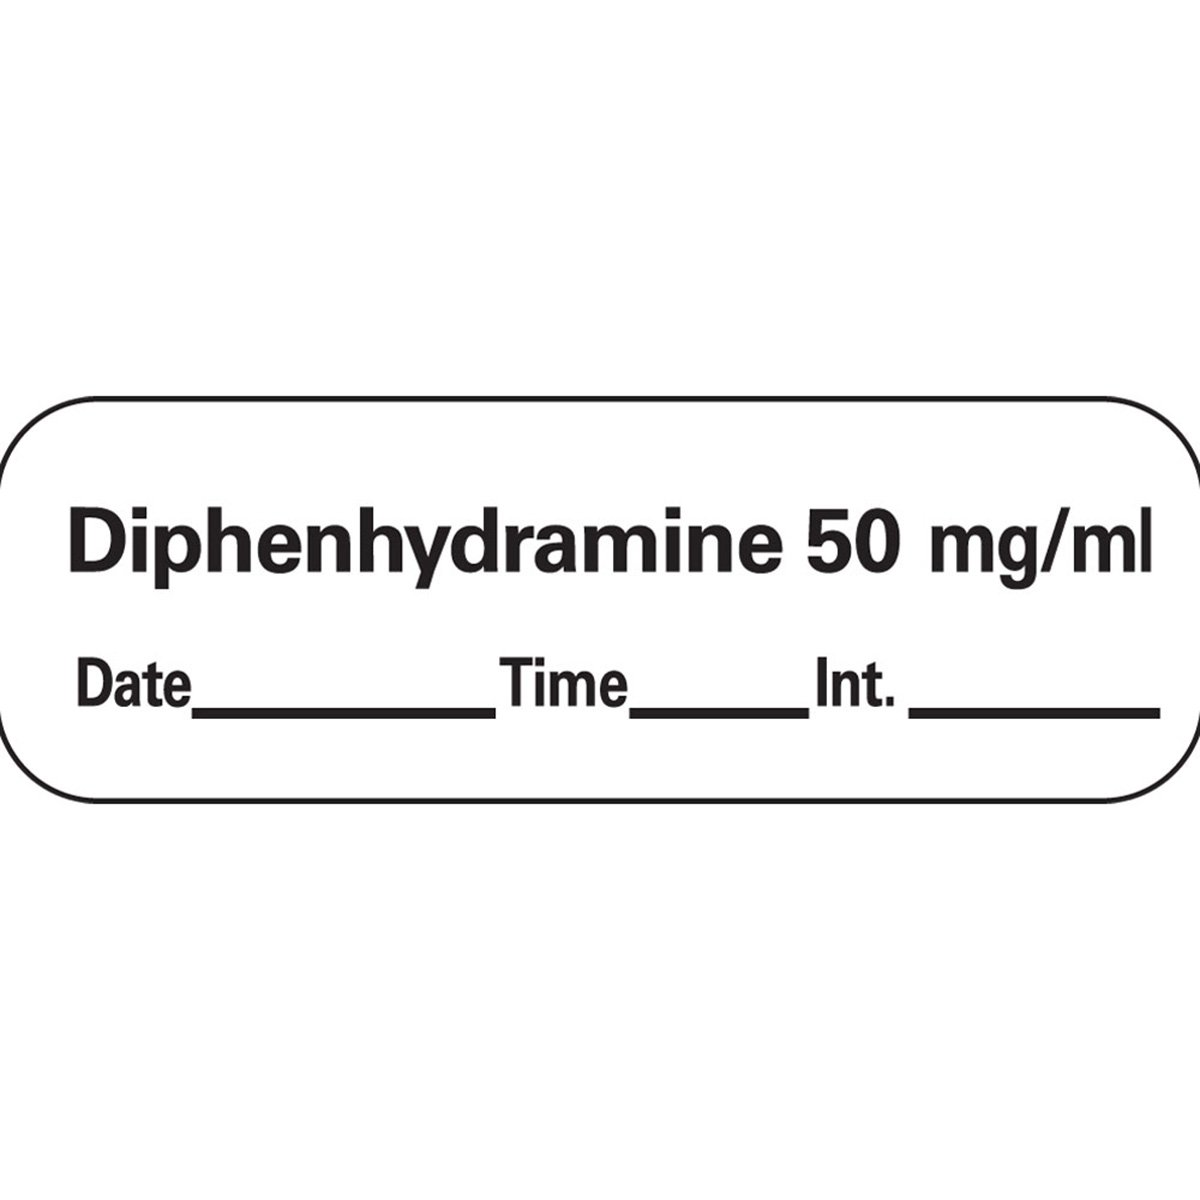 PDC Healthcare AN-210D50 Anesthesia Tape with Date, Time and Initial, Removable, Diphenhydramine 50 mg/mL, 1'' Core, 1/2'' x 500'', Imprints White 333 (Pack of 1)